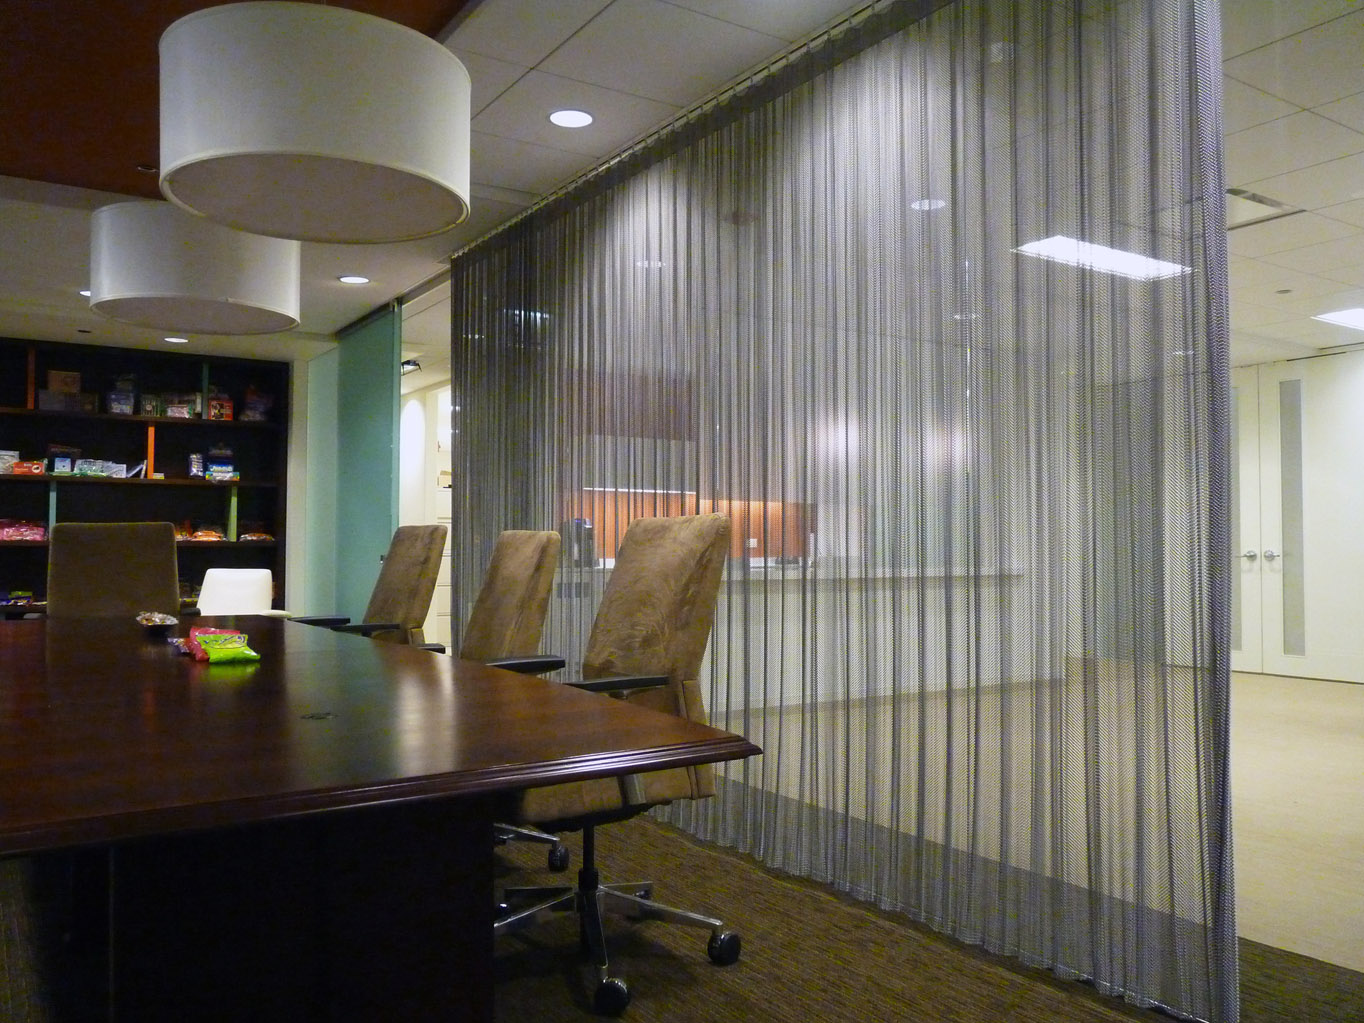 Farley's & Sathers Candy Company - Conference Room Coil Curtain